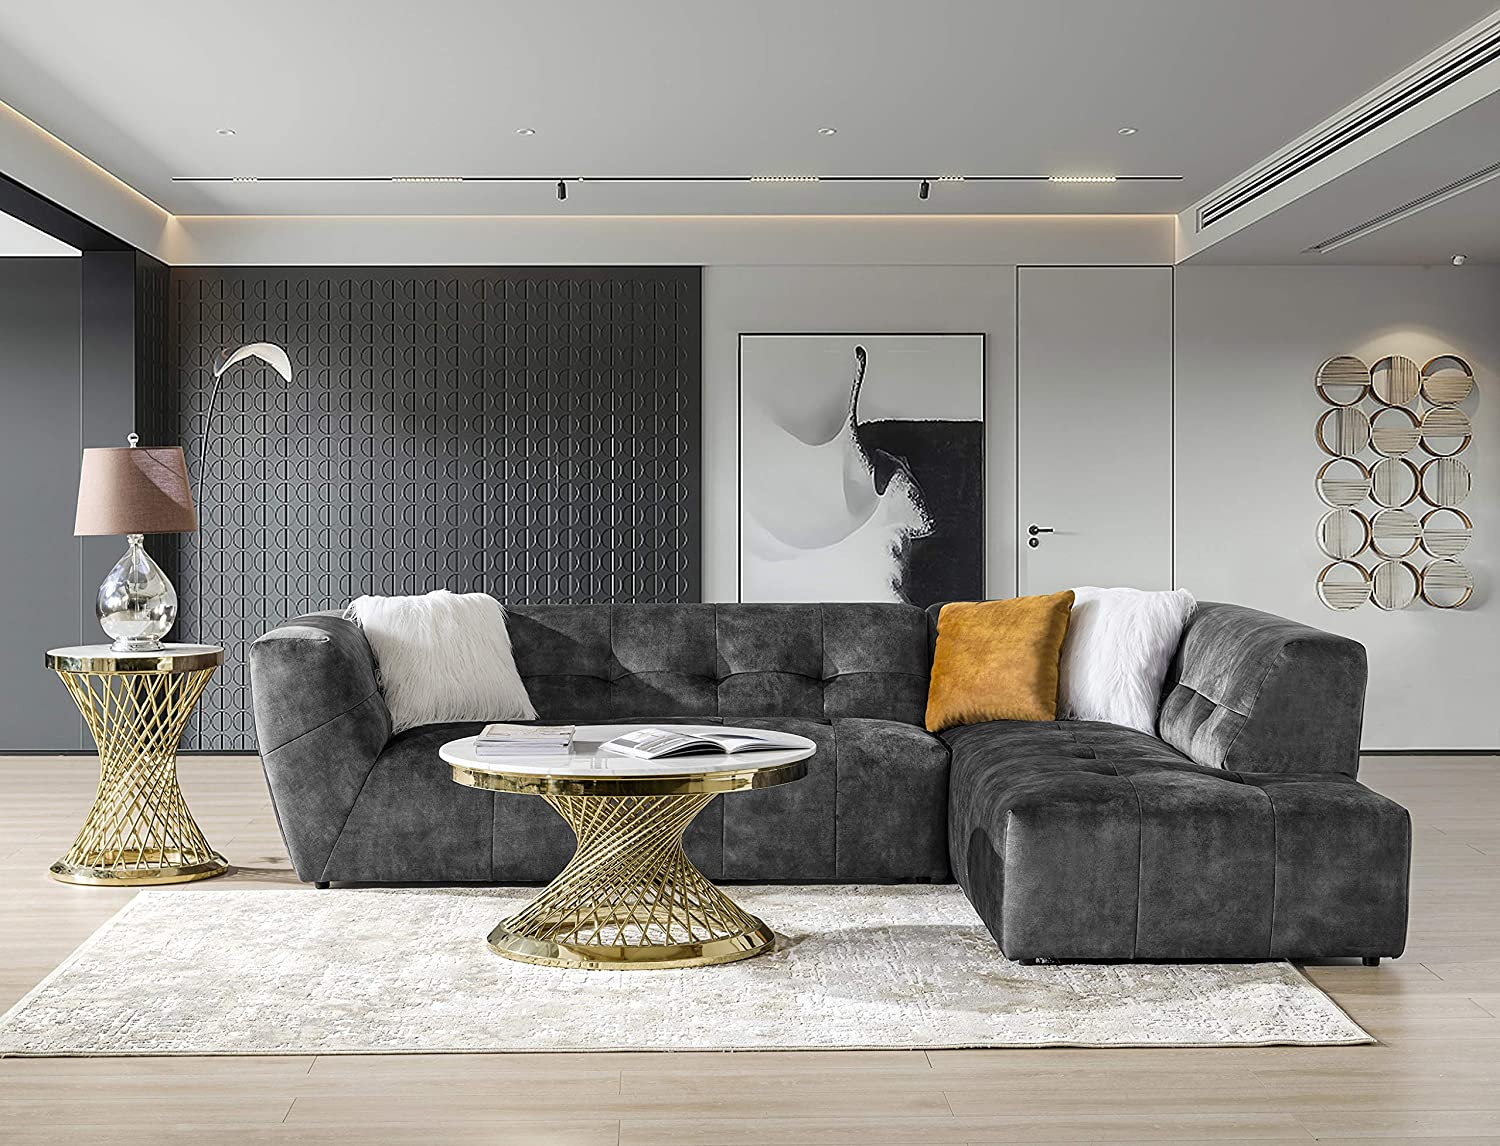 Amazon Com Acanva Luxury Mid Century Velvet Tufted Low Back Sofa Set L Shape 2 Piece Living Room Couch 113 W Right Hand Facing Sectional Grey Furniture Decor